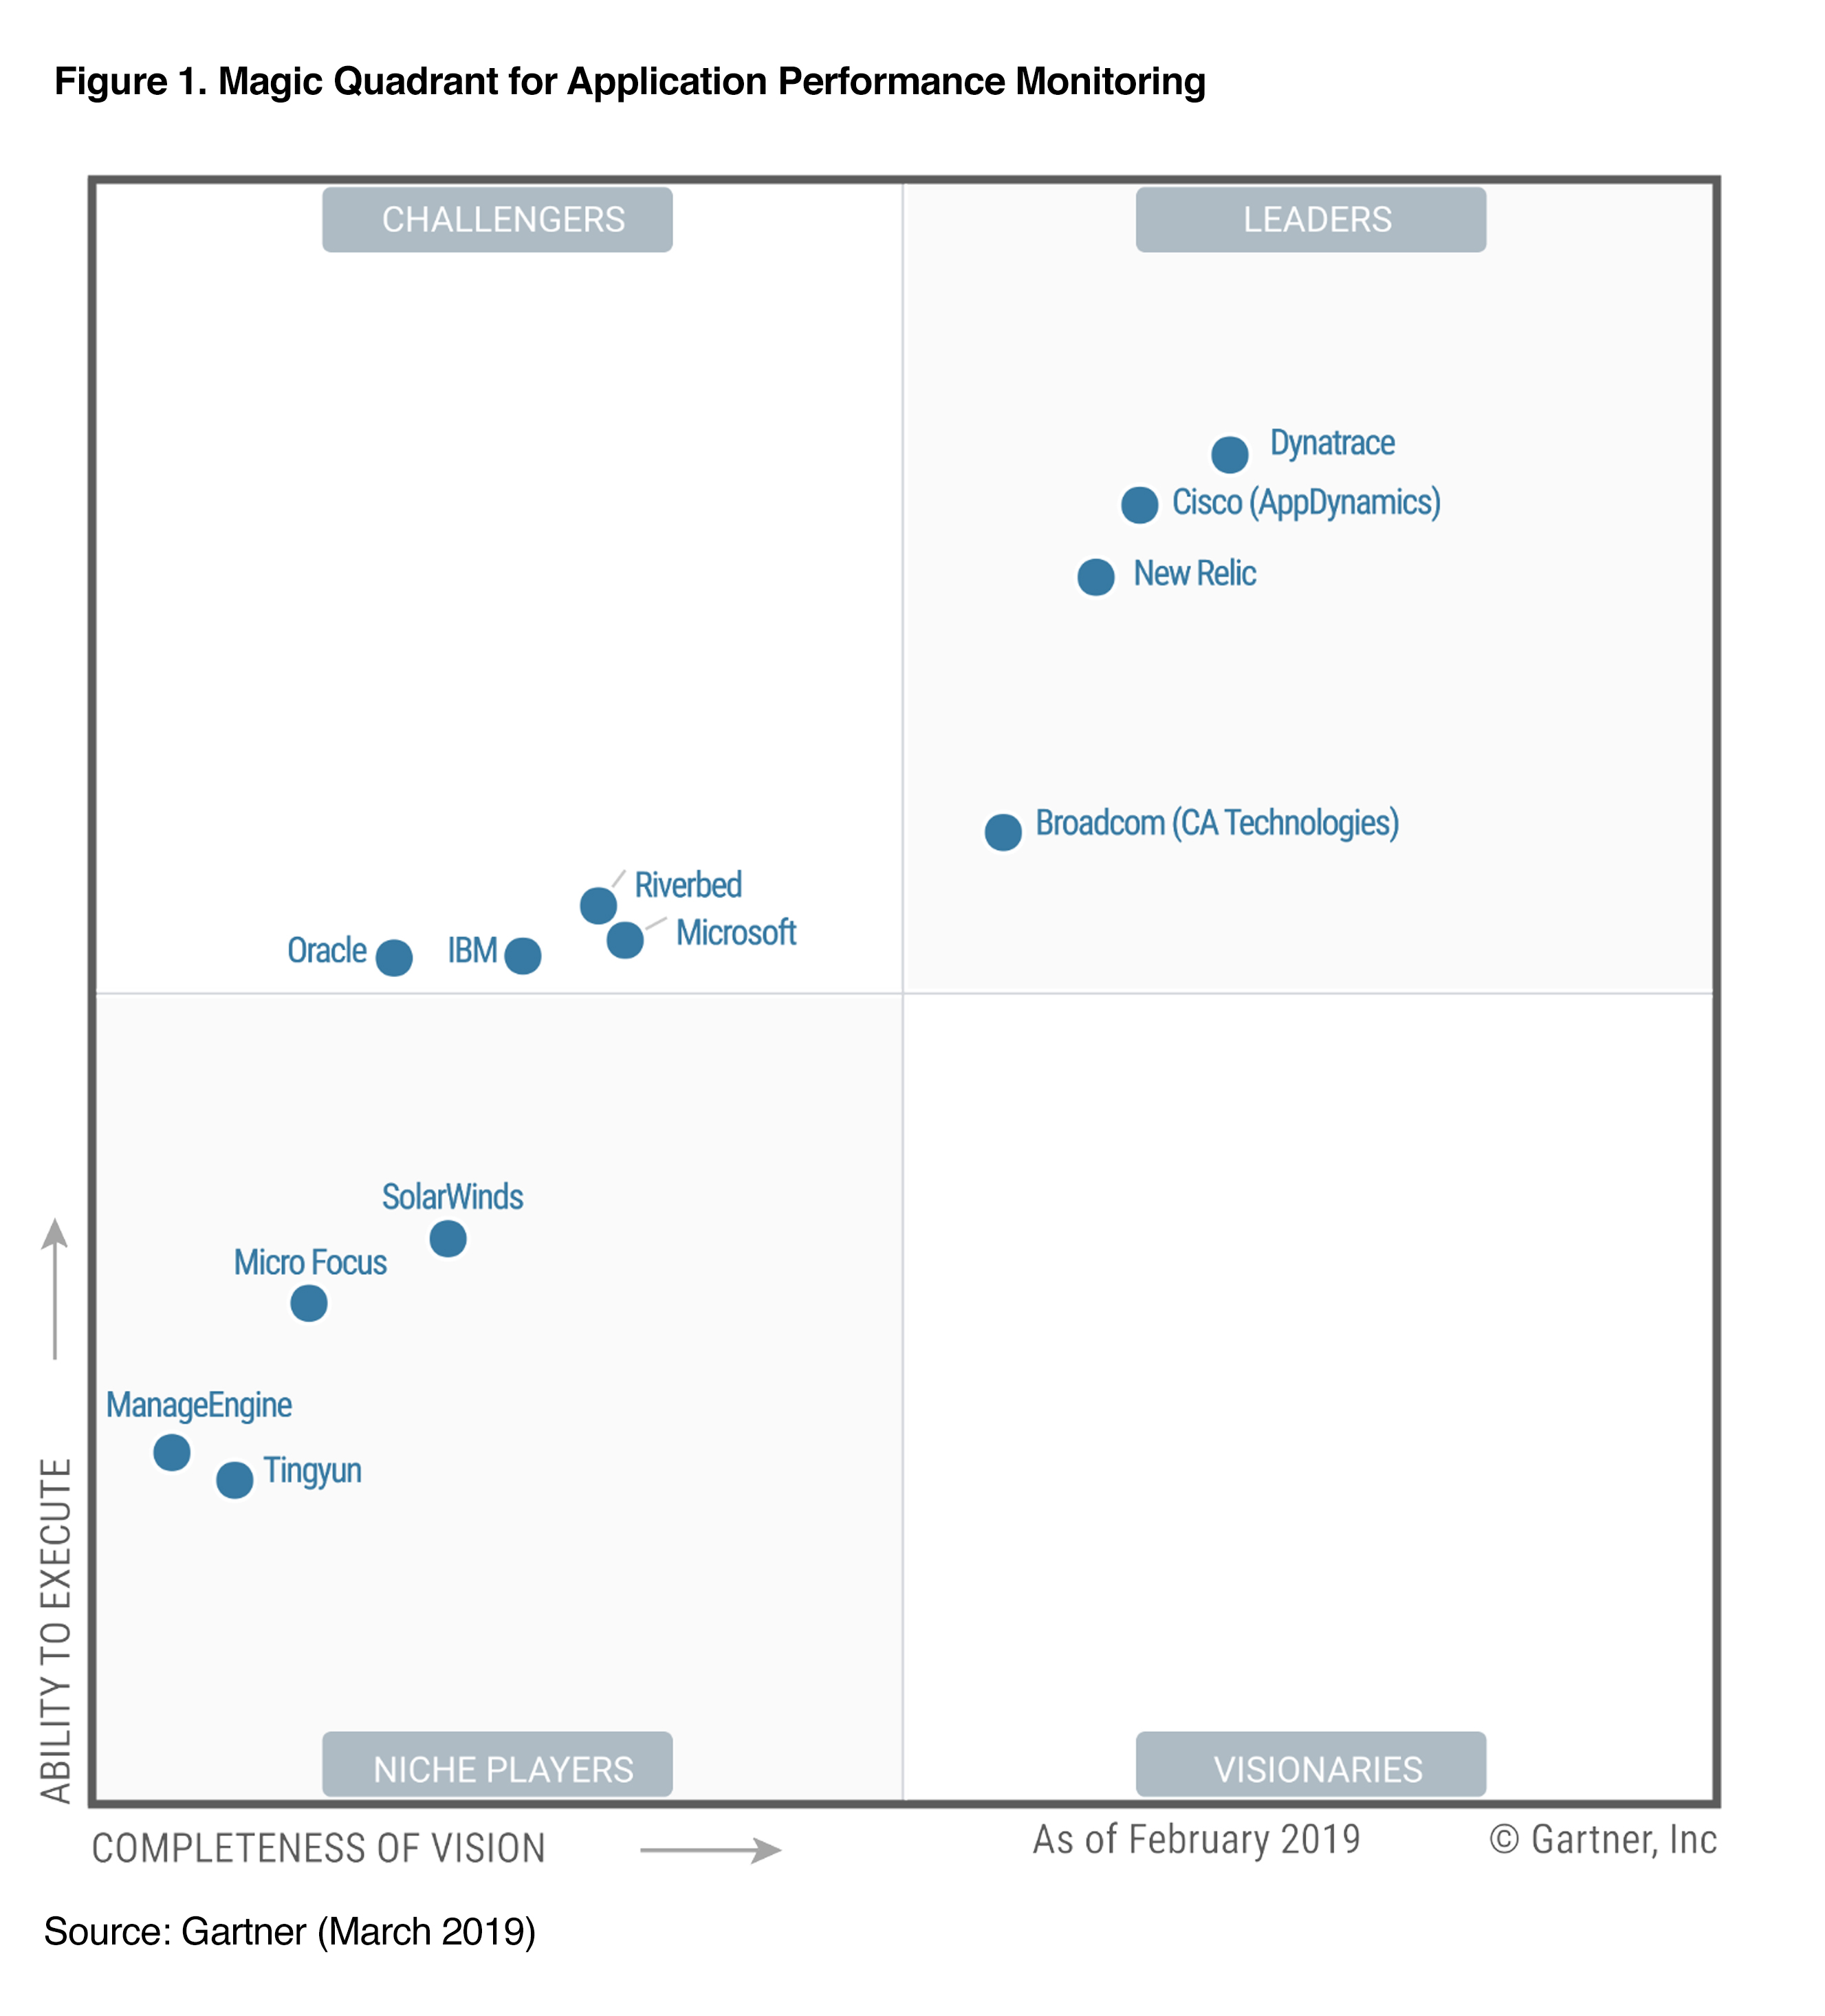 2019 Gartner Magic Quadrant for Application Performance Monitoring